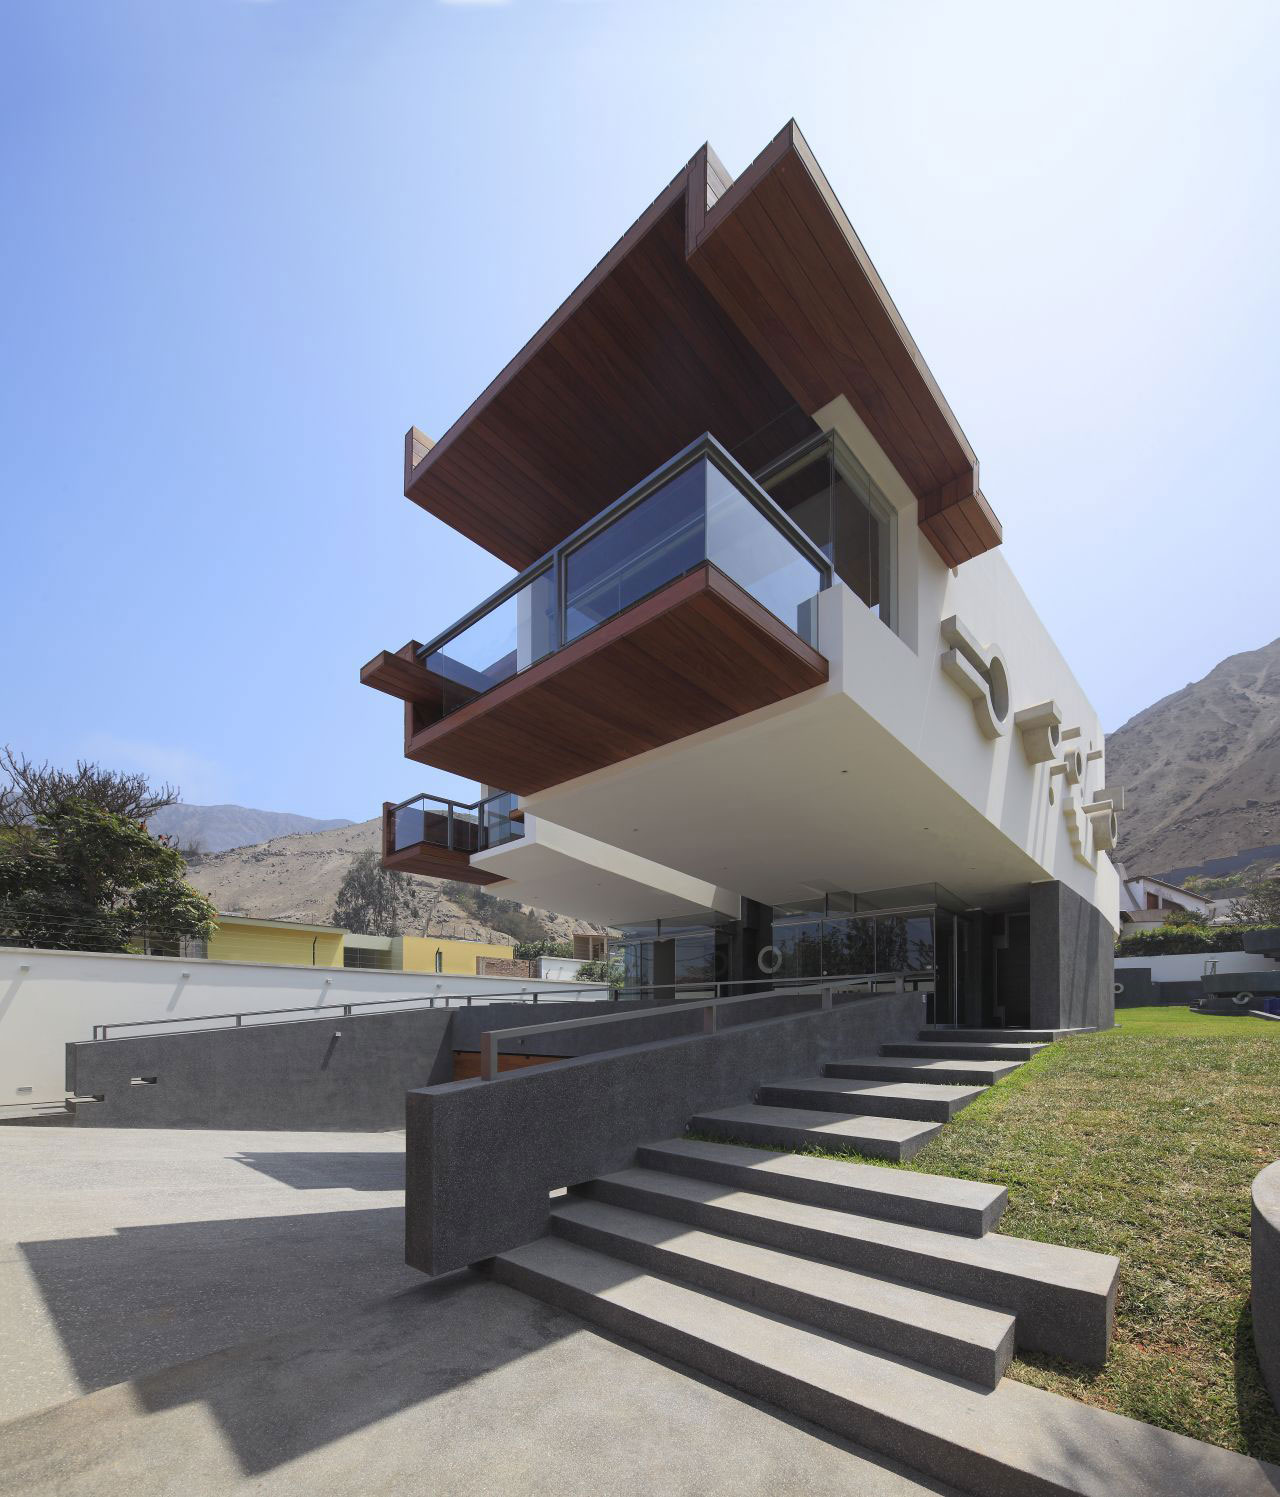 Balcony cantilever home in la planicie lima - Architecturen volumes ...